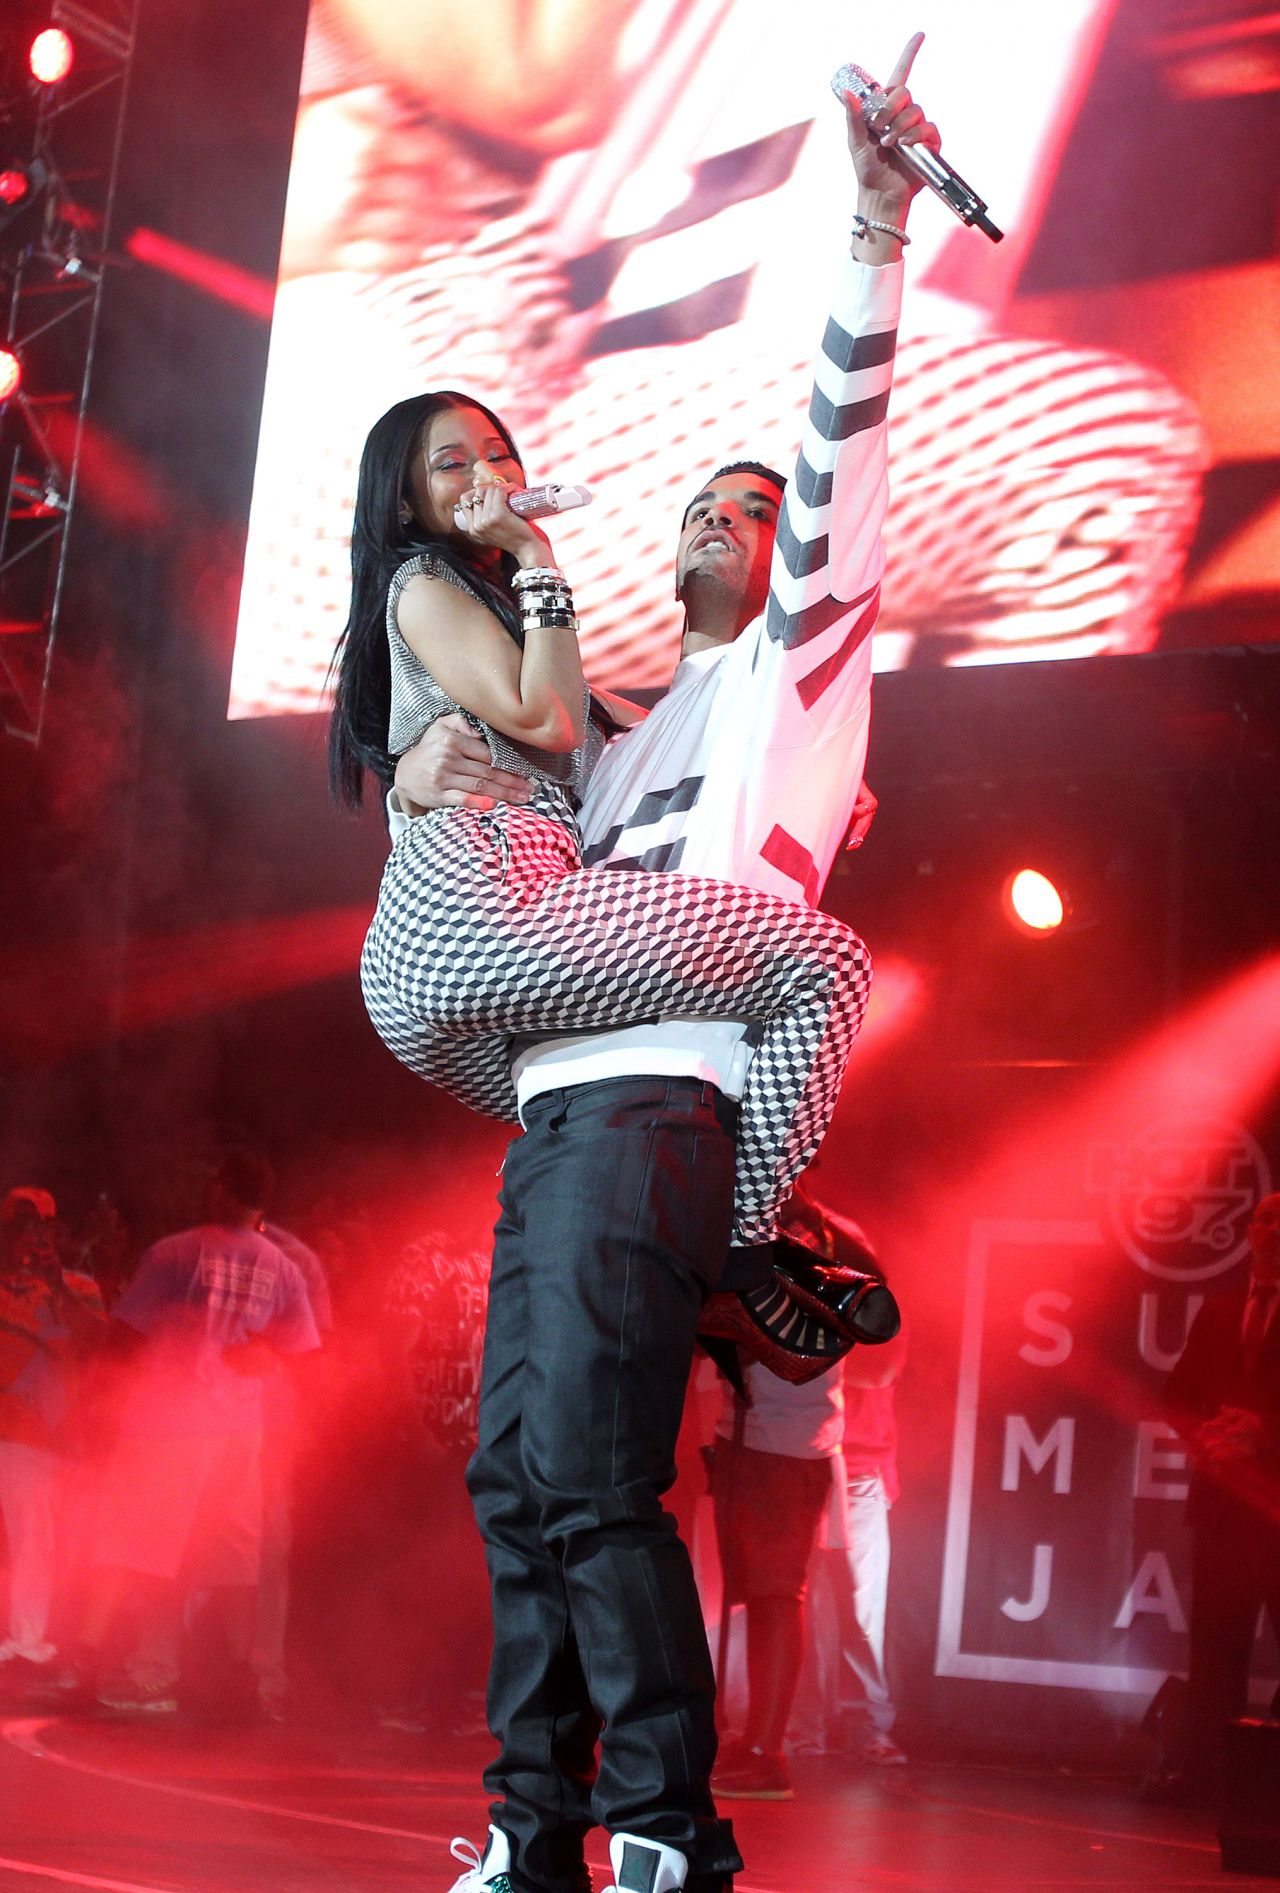 Are nicki minaj and drake dating 2014. dating over 40 statistics about the fall.